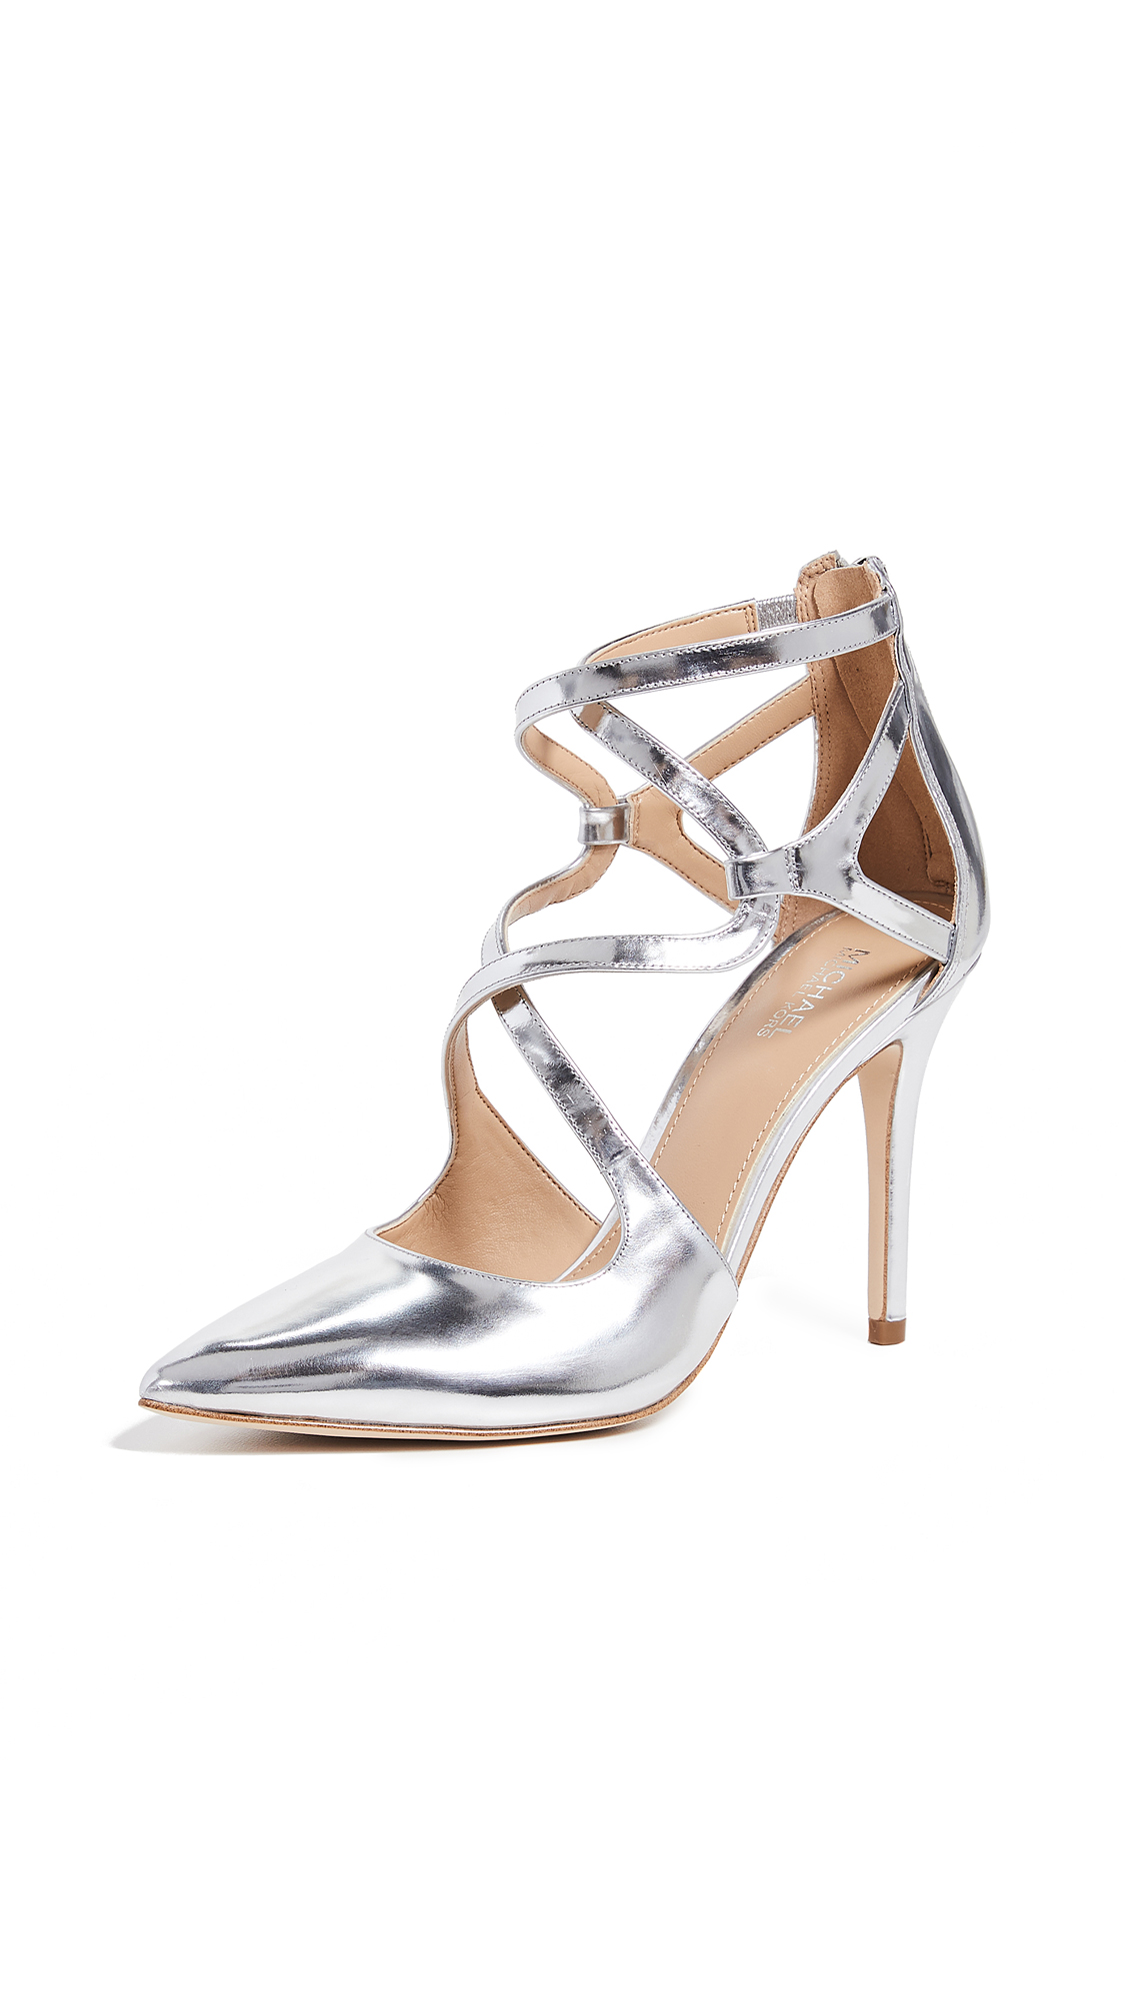 MICHAEL Michael Kors Catia Point Toe Pumps - Silver